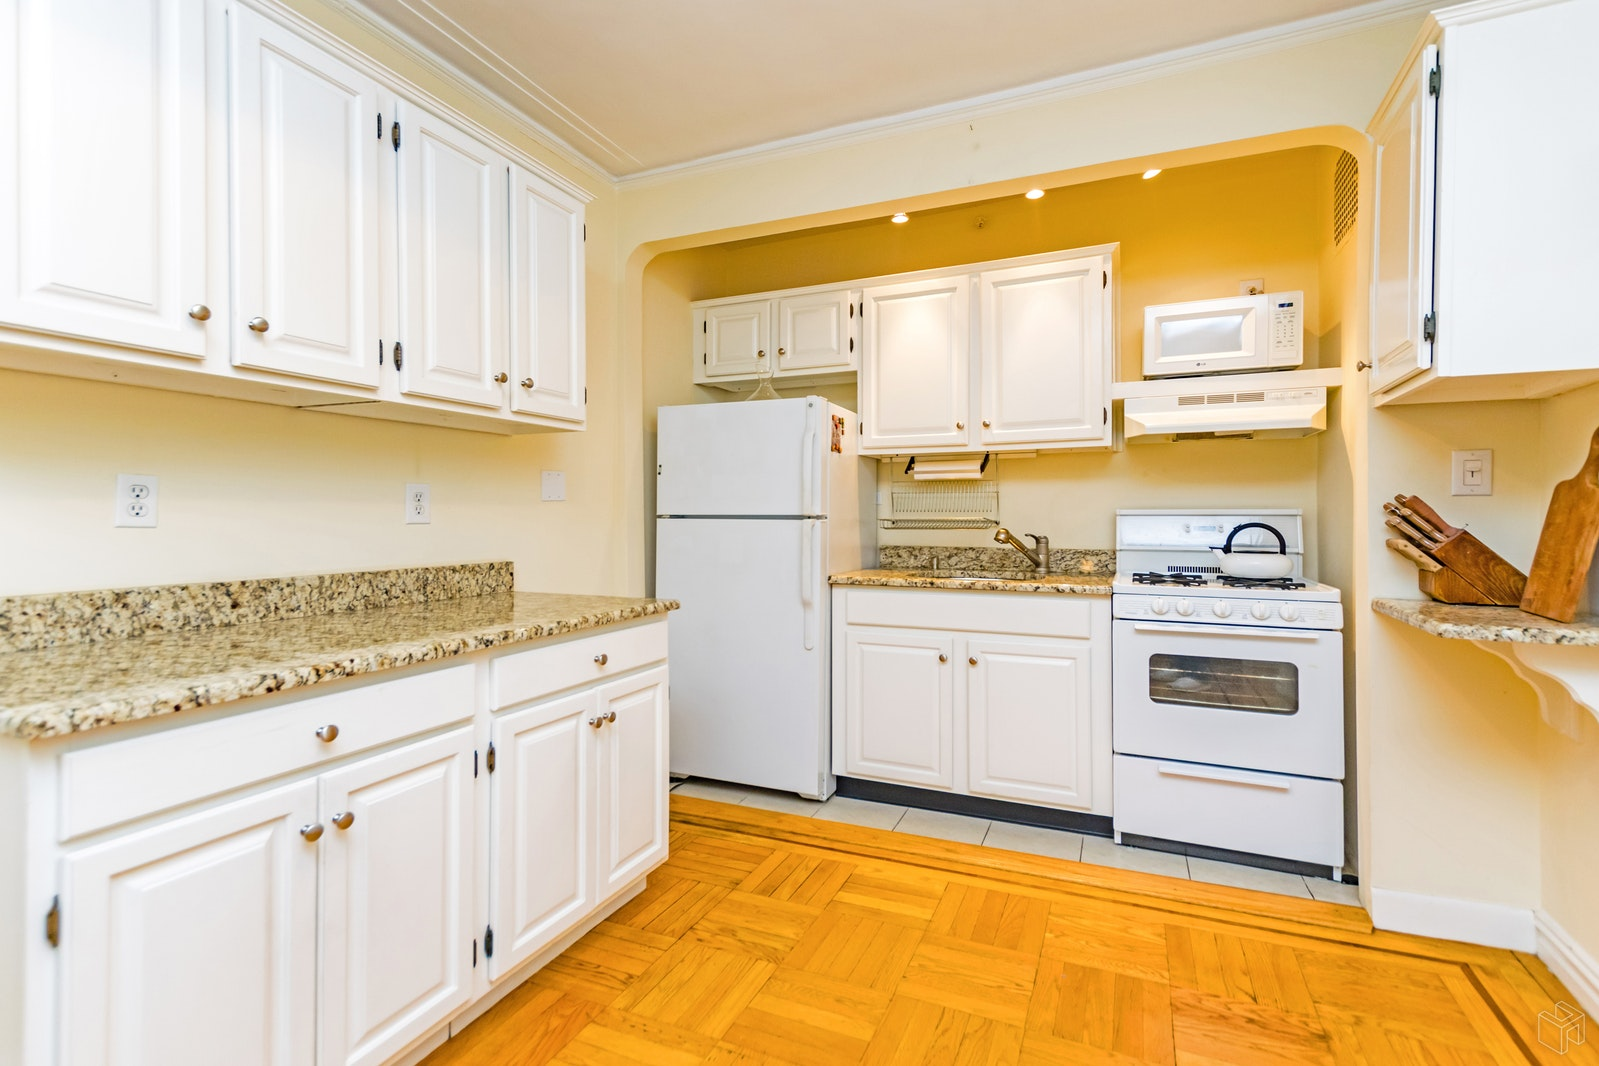 50 PARK TERRACE EAST, Inwood, $325,000, Web #: 18850507